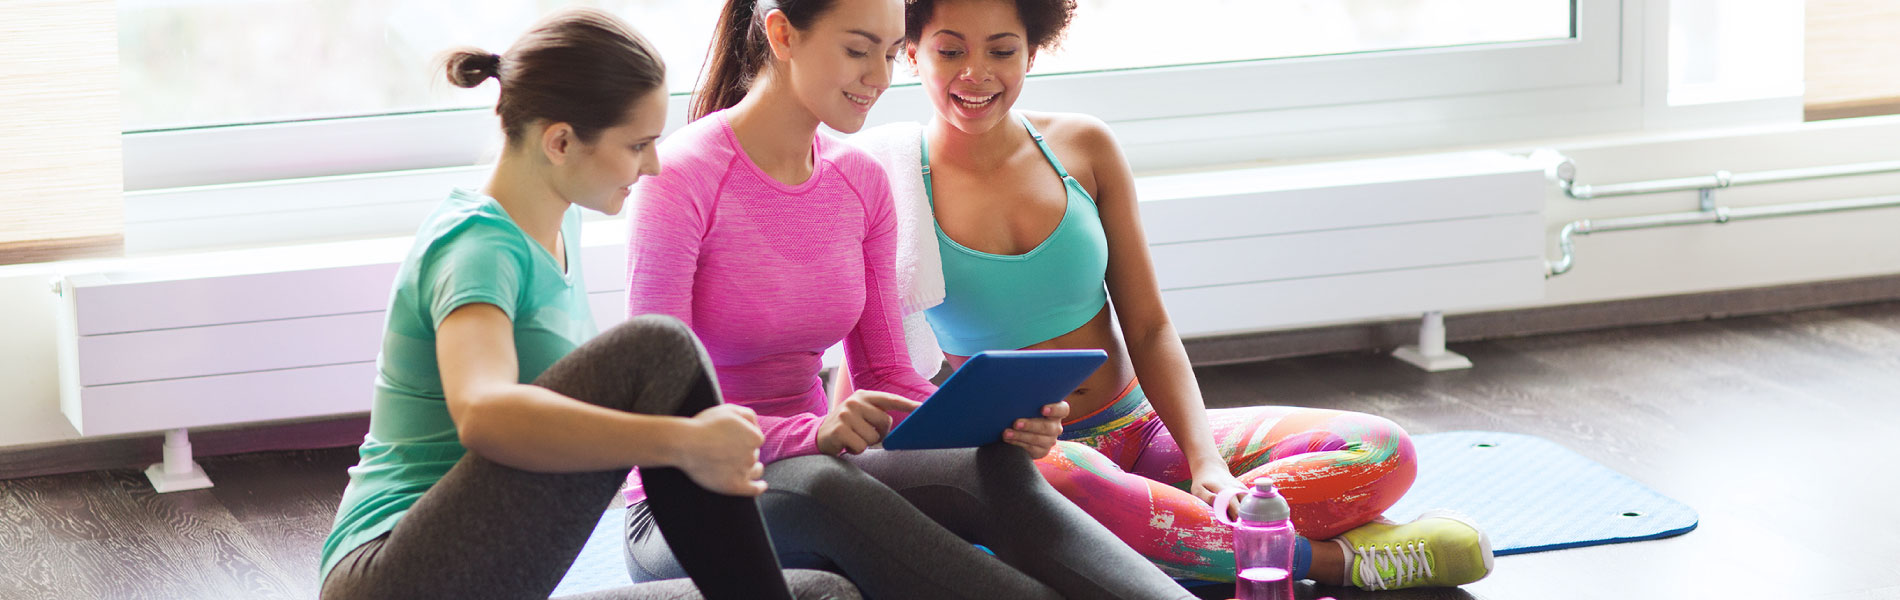 Creating_a_Great_Google_My_Business_Listing_for_your_Yoga_Studio_1900x600.jpg